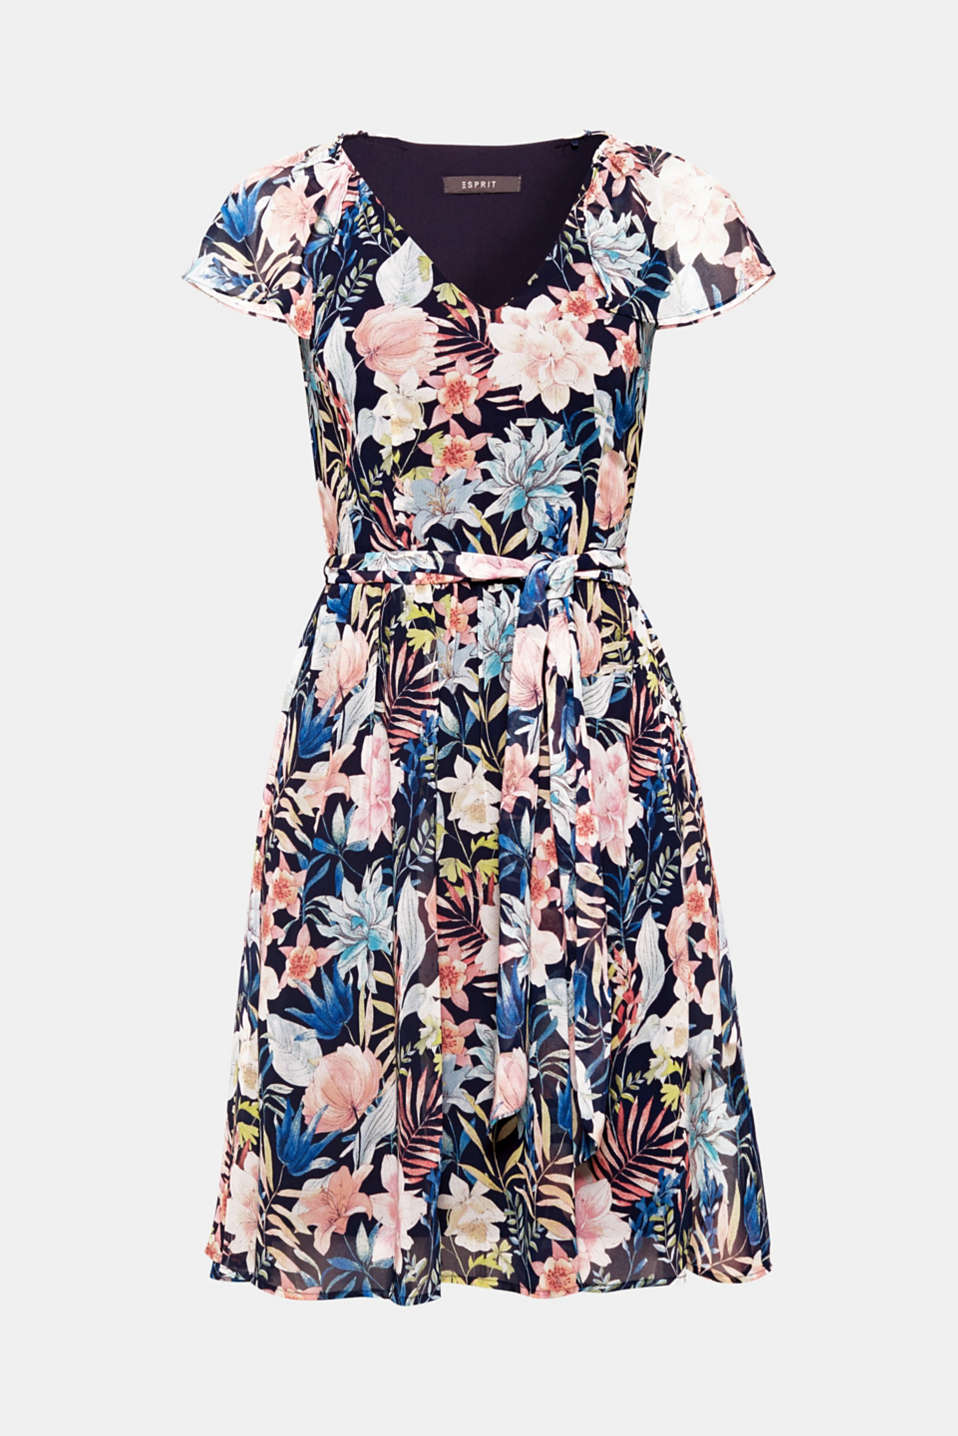 Delicate chiffon and colourful flowers – what a summery trend mix! This airy dress also boasts short cap sleeves and a swirling skirt.